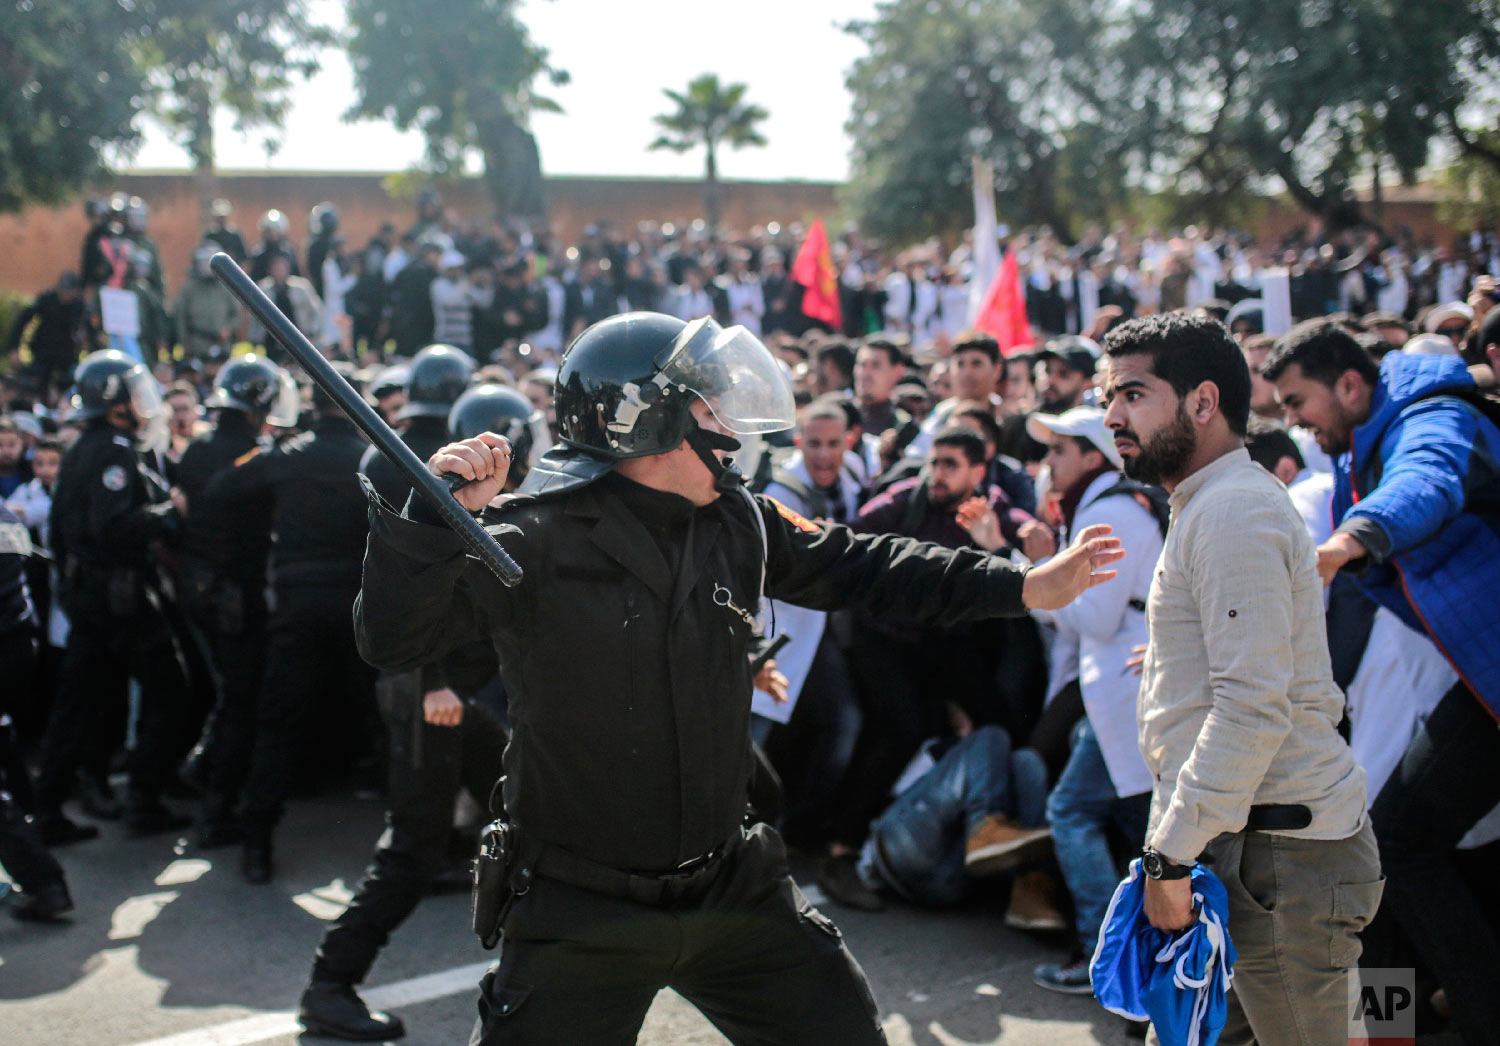 Security forces charge at protesting teachers during a demonstration in Rabat, Morocco, Feb. 20, 2019. (AP Photo/Mosa'ab Elshamy)